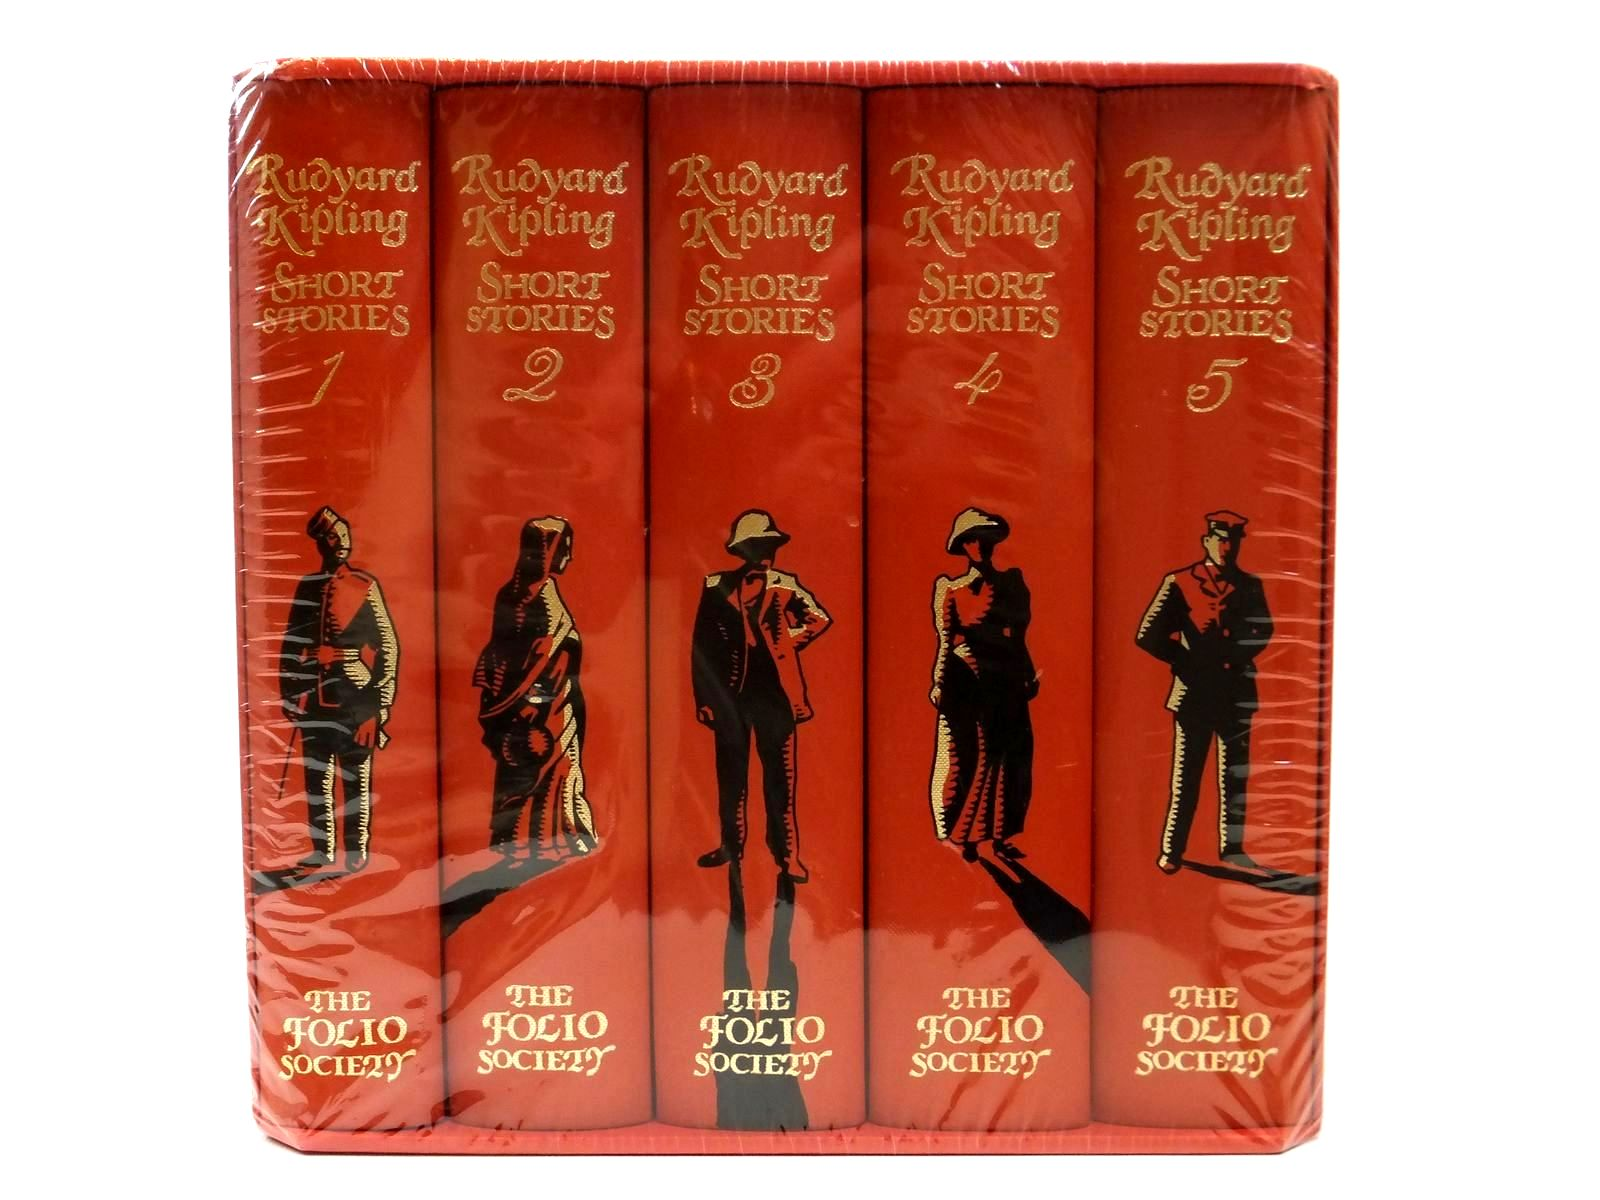 Photo of RUDYARD KIPLING COLLECTED SHORT STORIES (5 VOLUMES) written by Kipling, Rudyard illustrated by Bannister, Philip published by Folio Society (STOCK CODE: 2121854)  for sale by Stella & Rose's Books